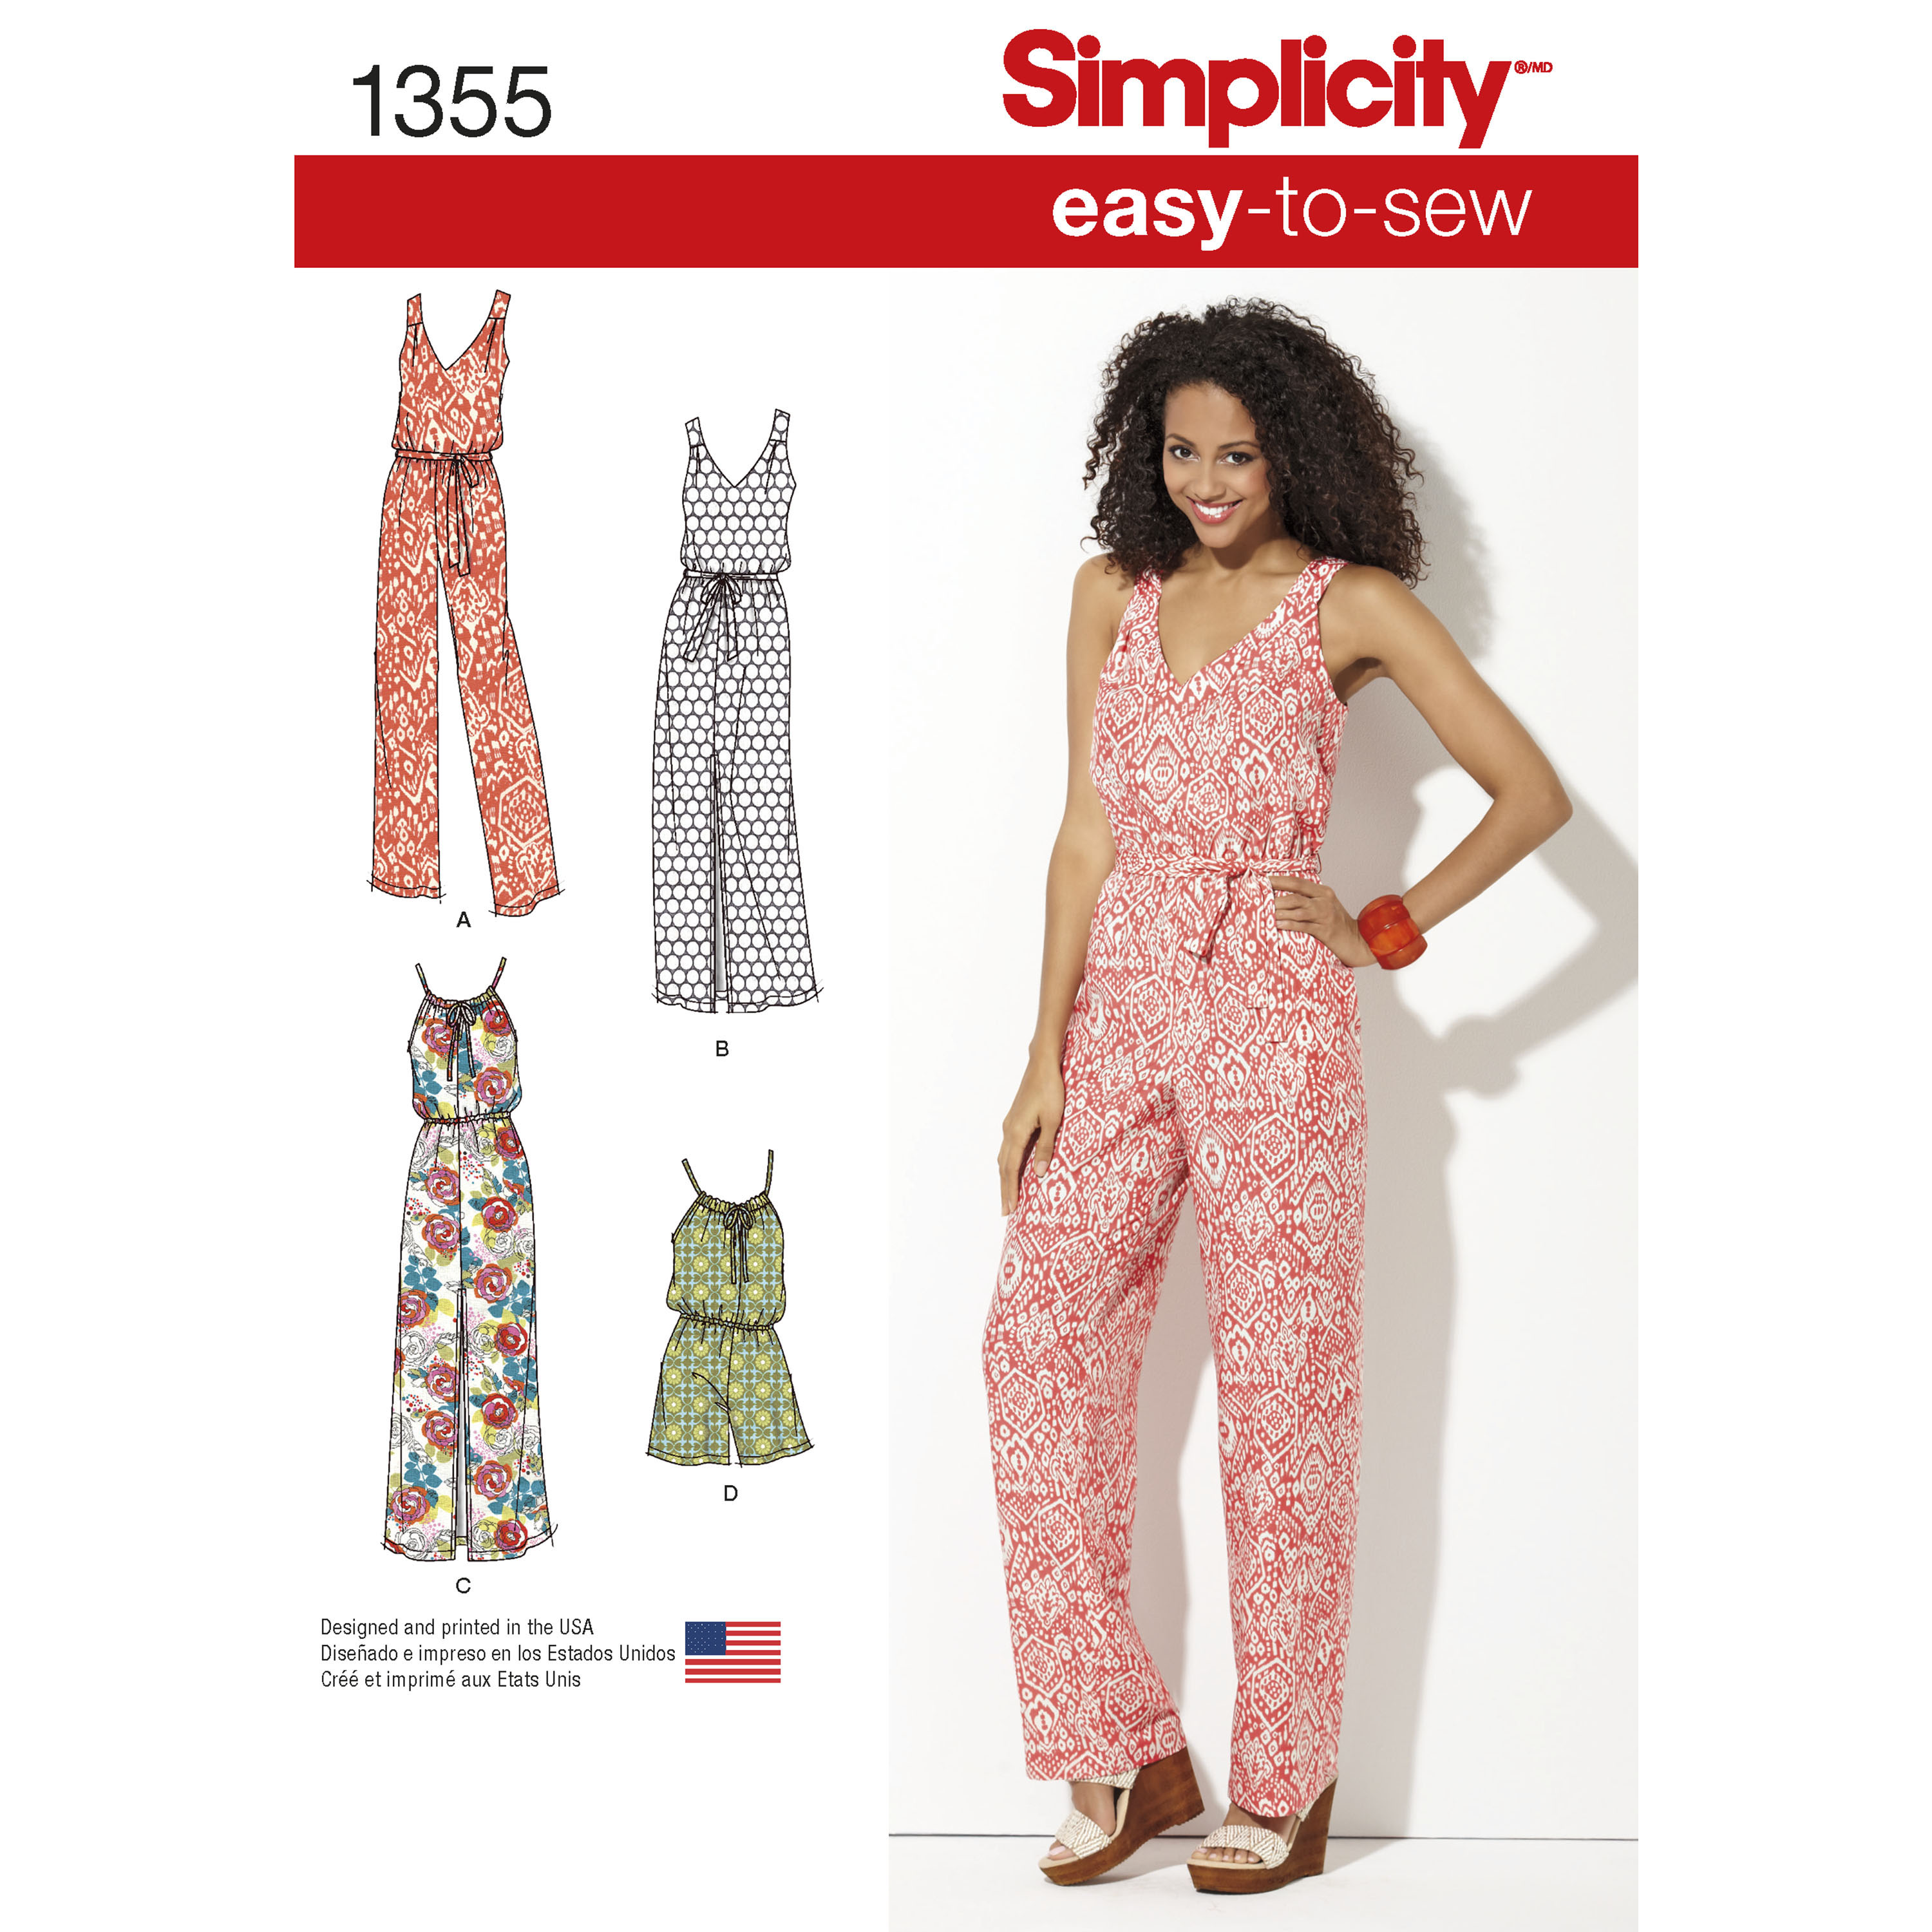 Simplicity Sewing Patterns - Page 45 of 61 - New Forest Fabrics